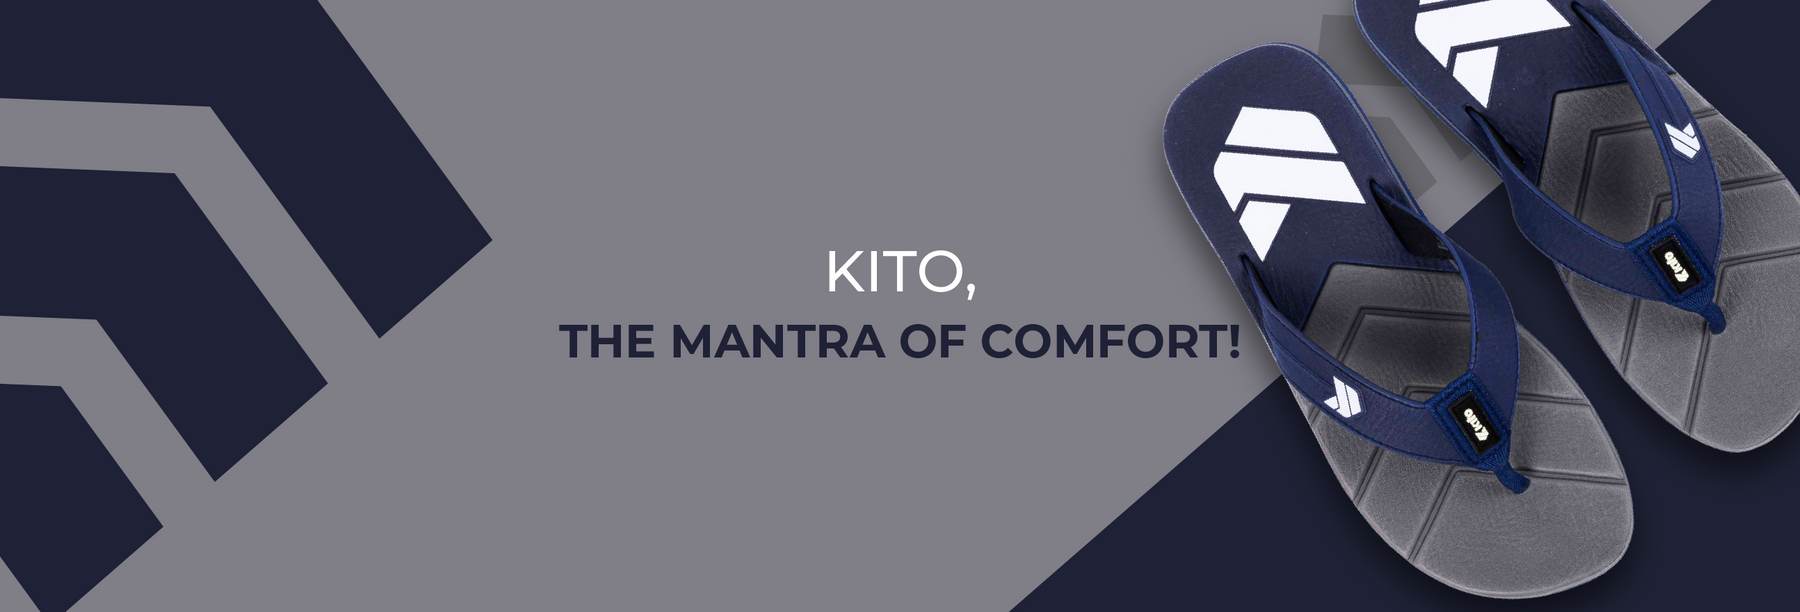 KITO, THE MANTRA OF COMFORT!